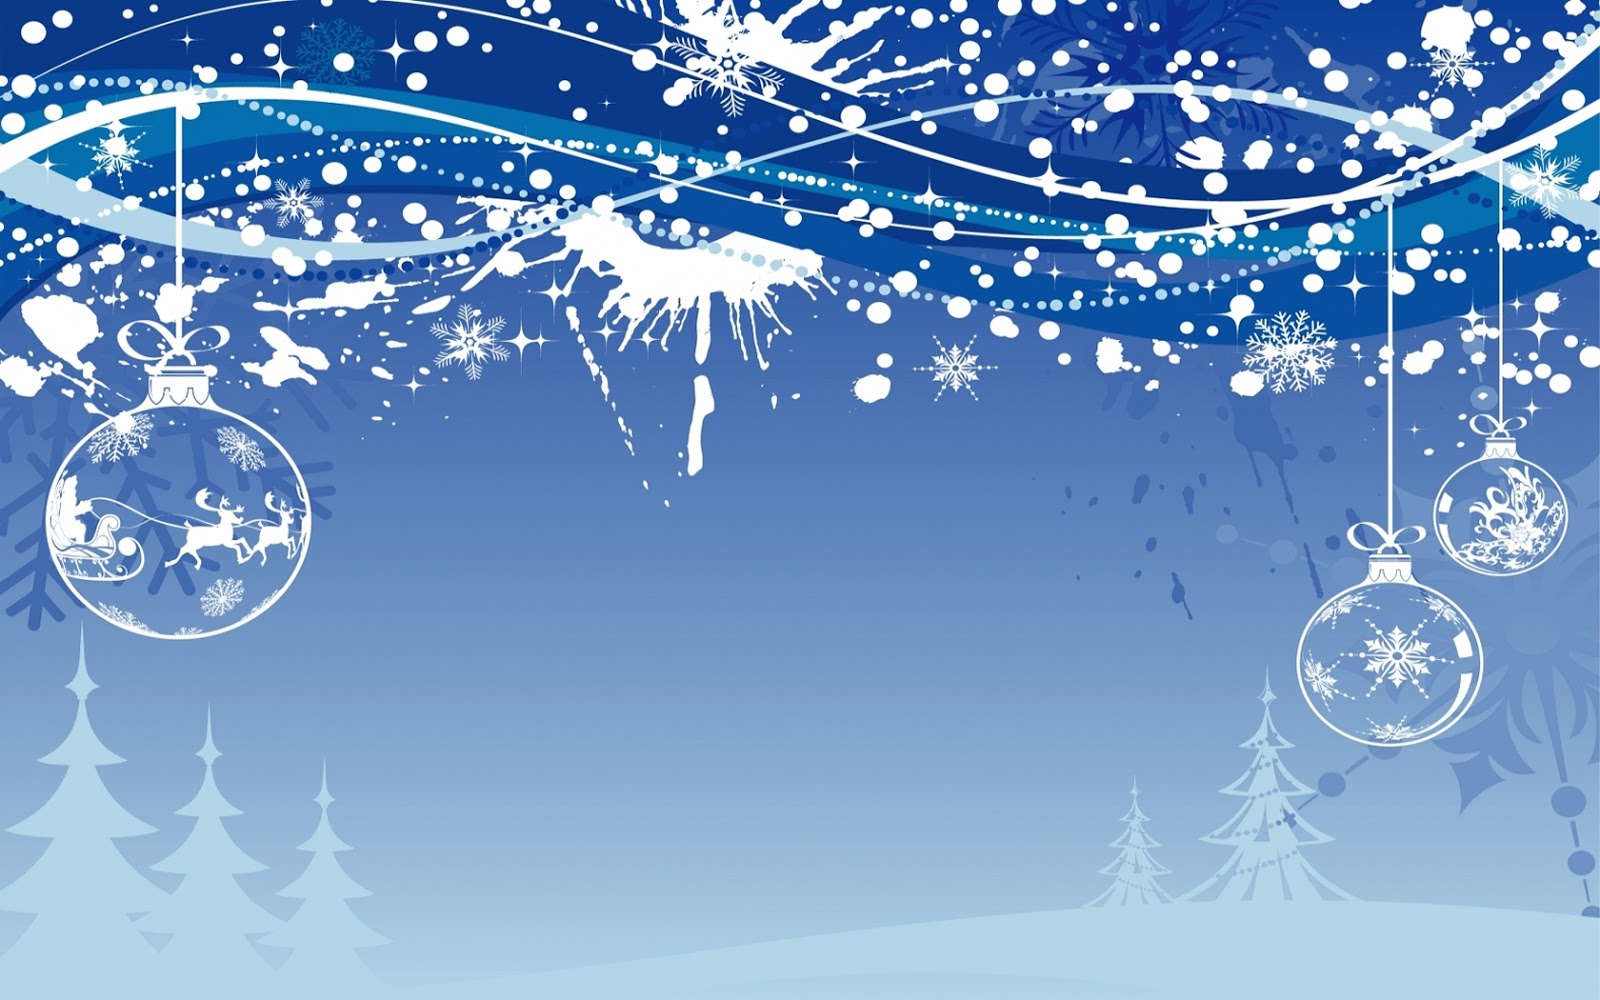 Free Animated Snow Cliparts, Download Free Clip Art, Free Clip Art.